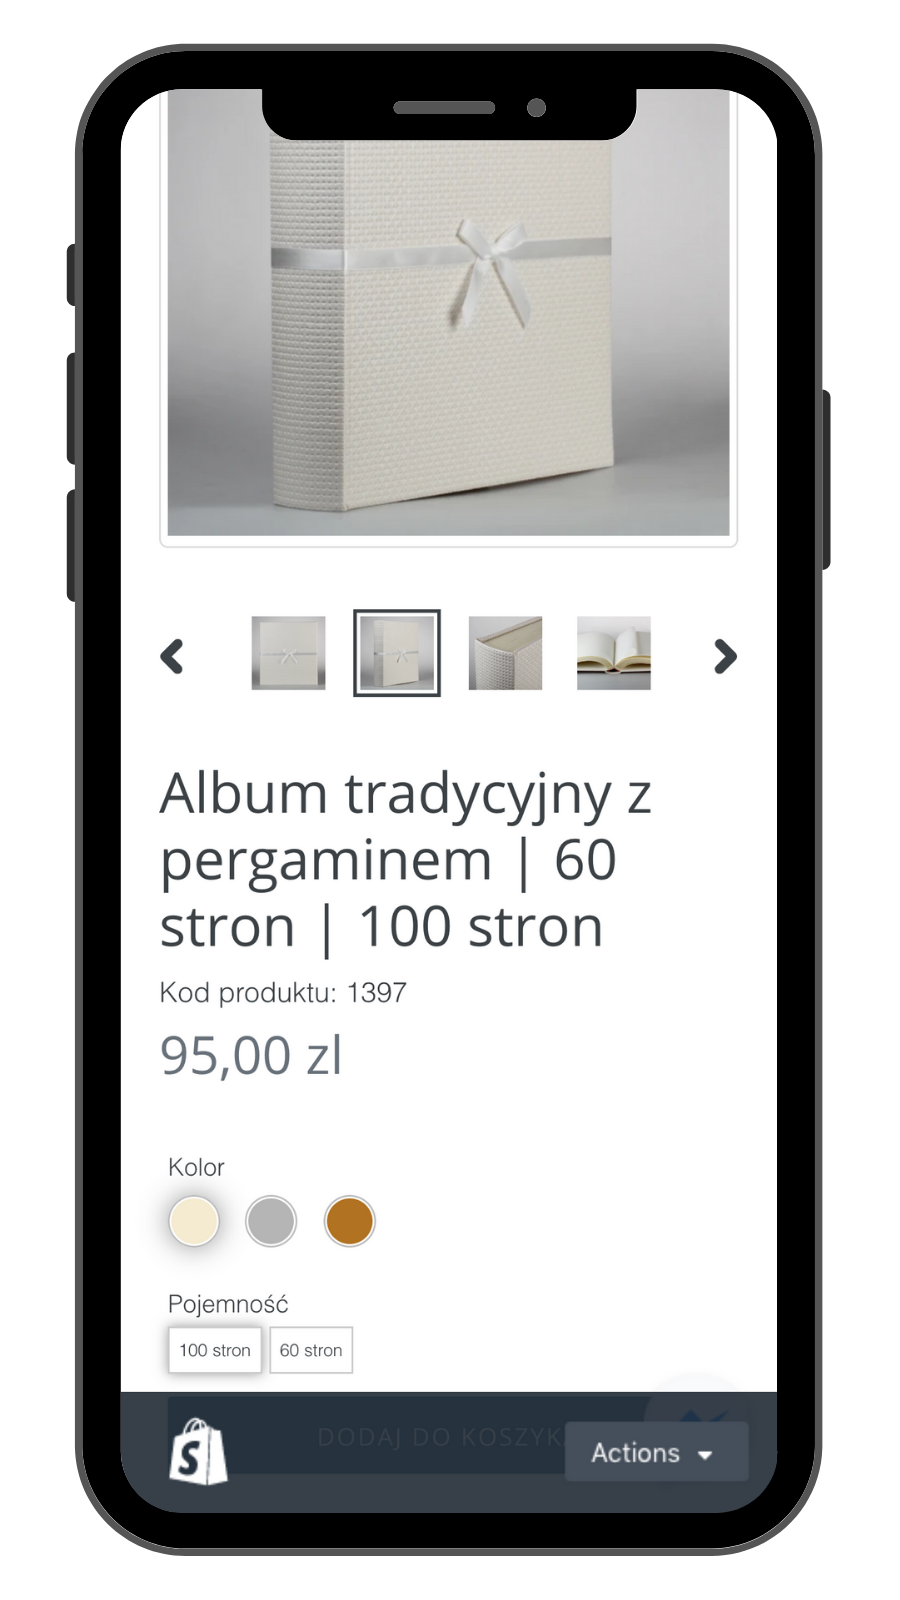 Product page on mobile